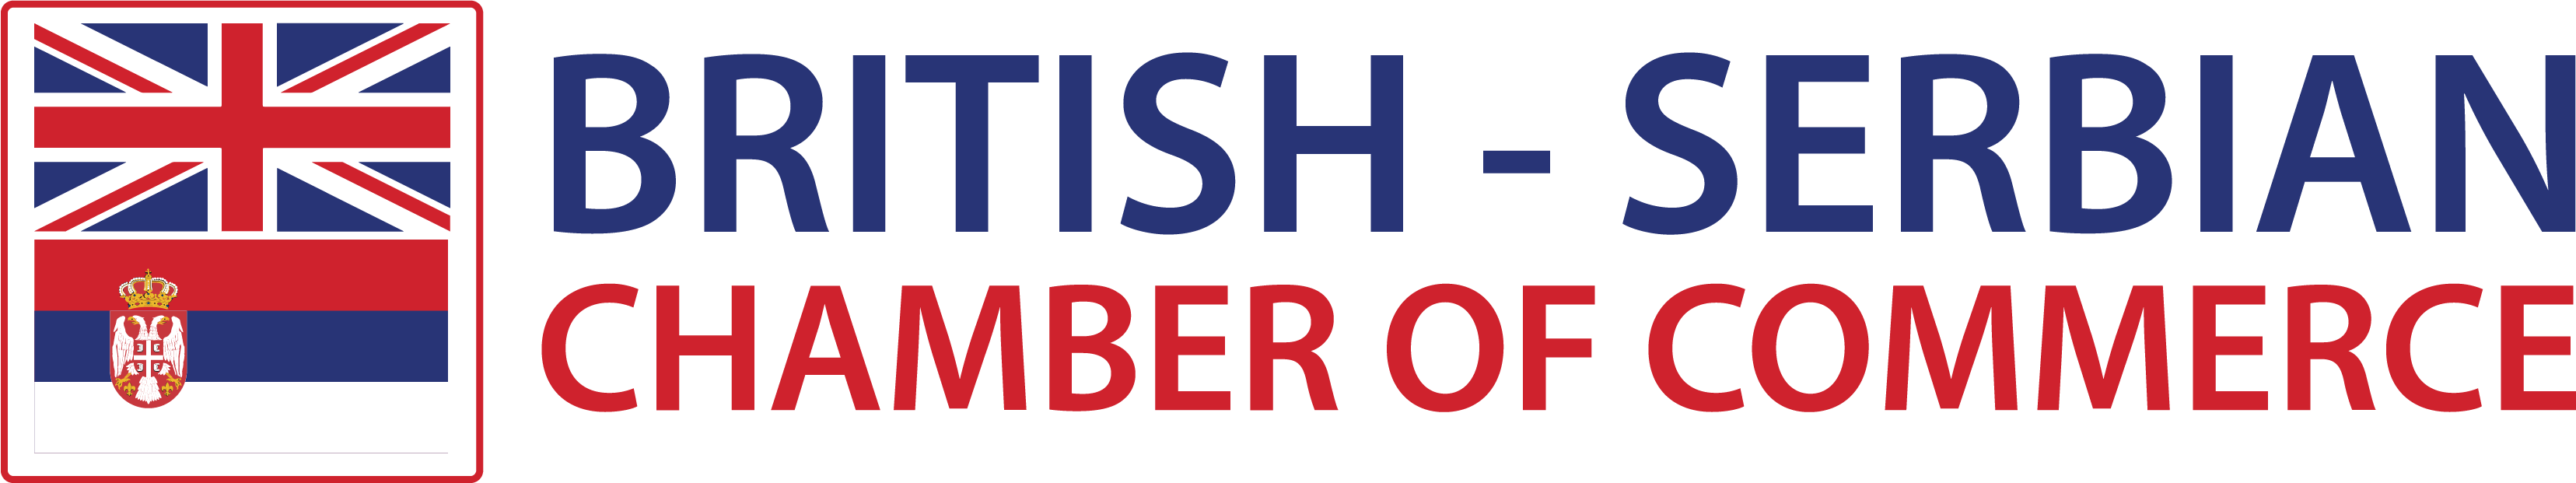 Logo-British-Serbian-Chamber-of-Commerce